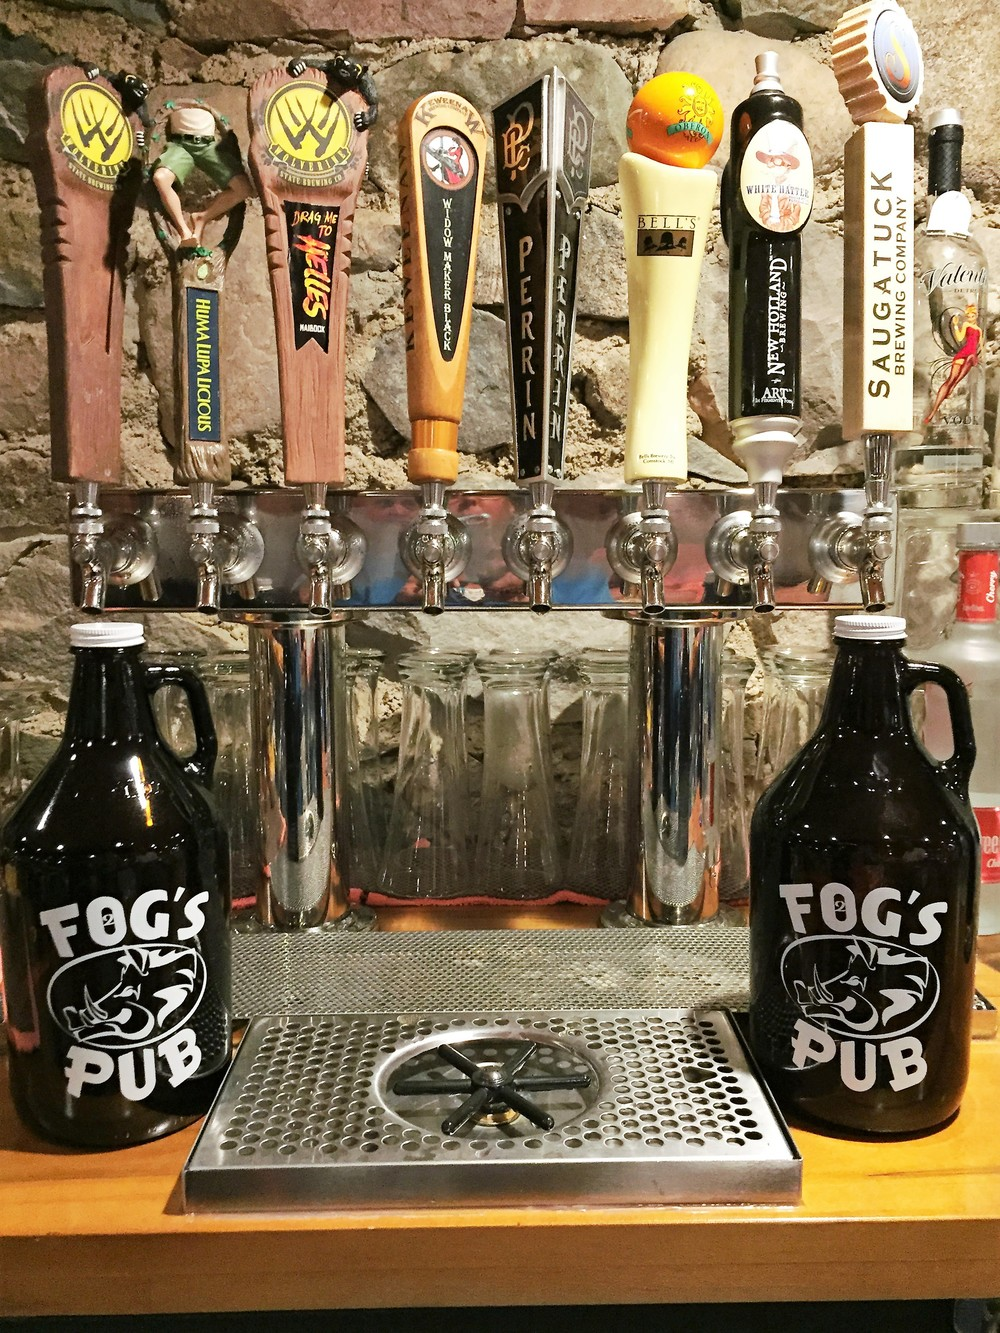 2FOG's Pub Growlers & Michigan Tap Beers